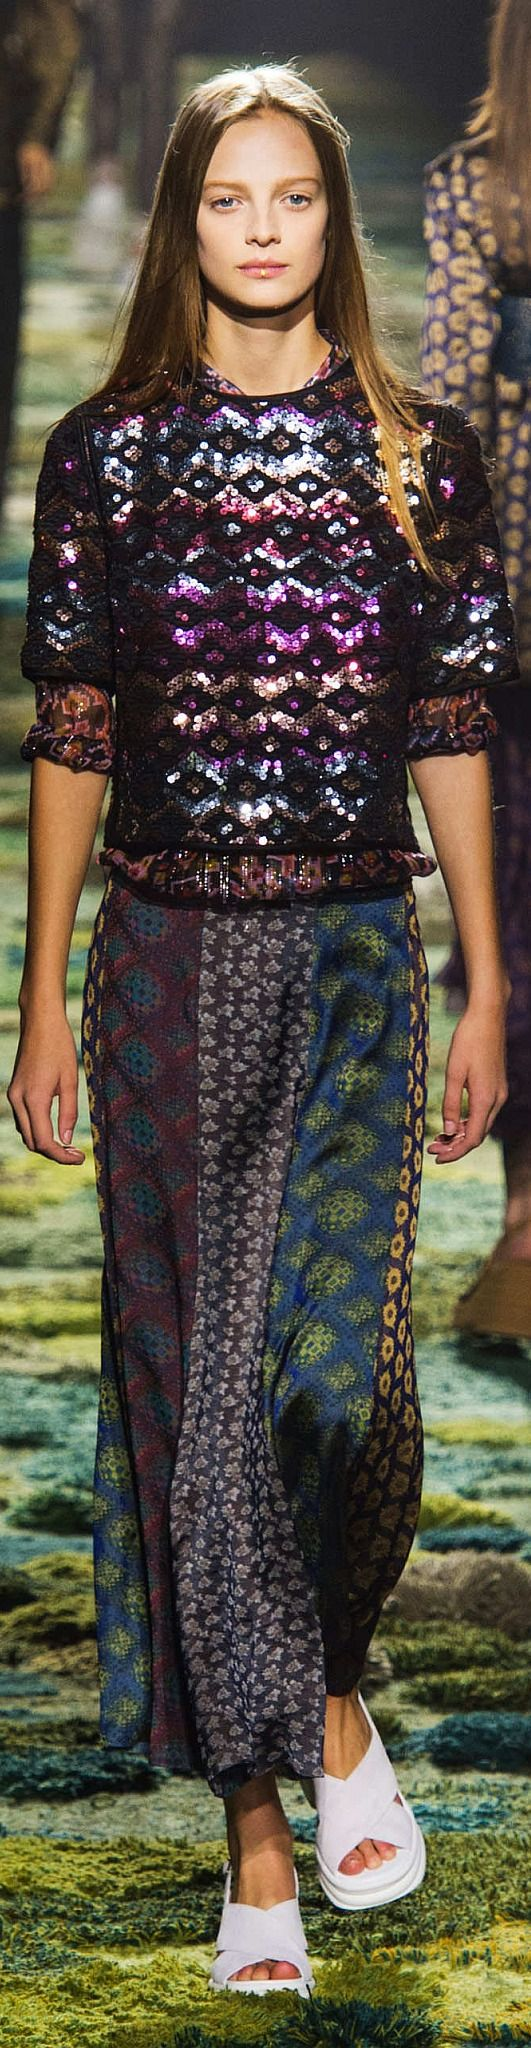 Dries Van Noten Collection Spring 2015 | The House of Beccaria~